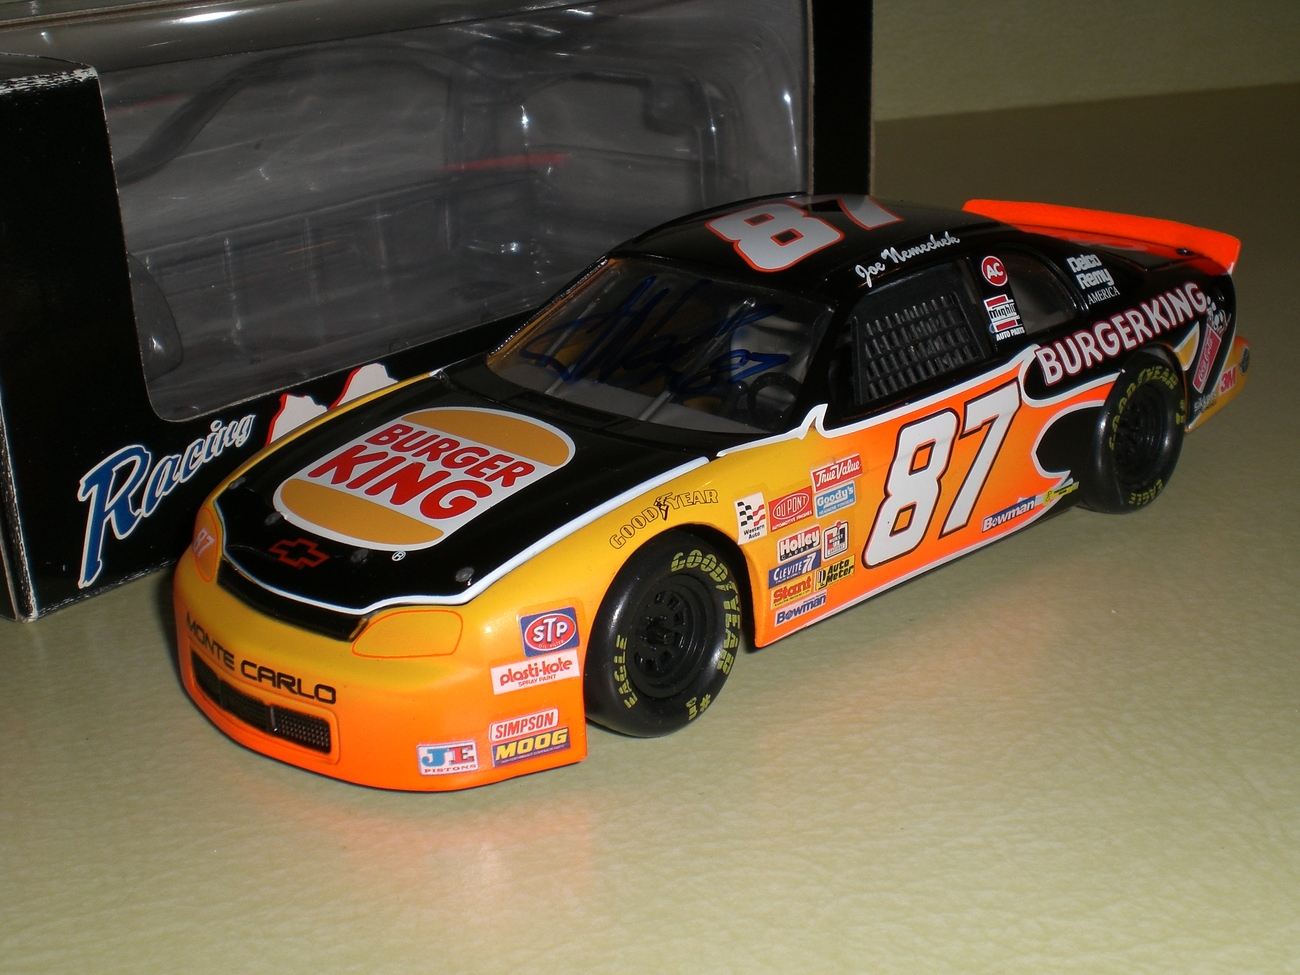 Joe Nemechek SIGNED Nascar 1/24 Burger King diecast car RARE image 2